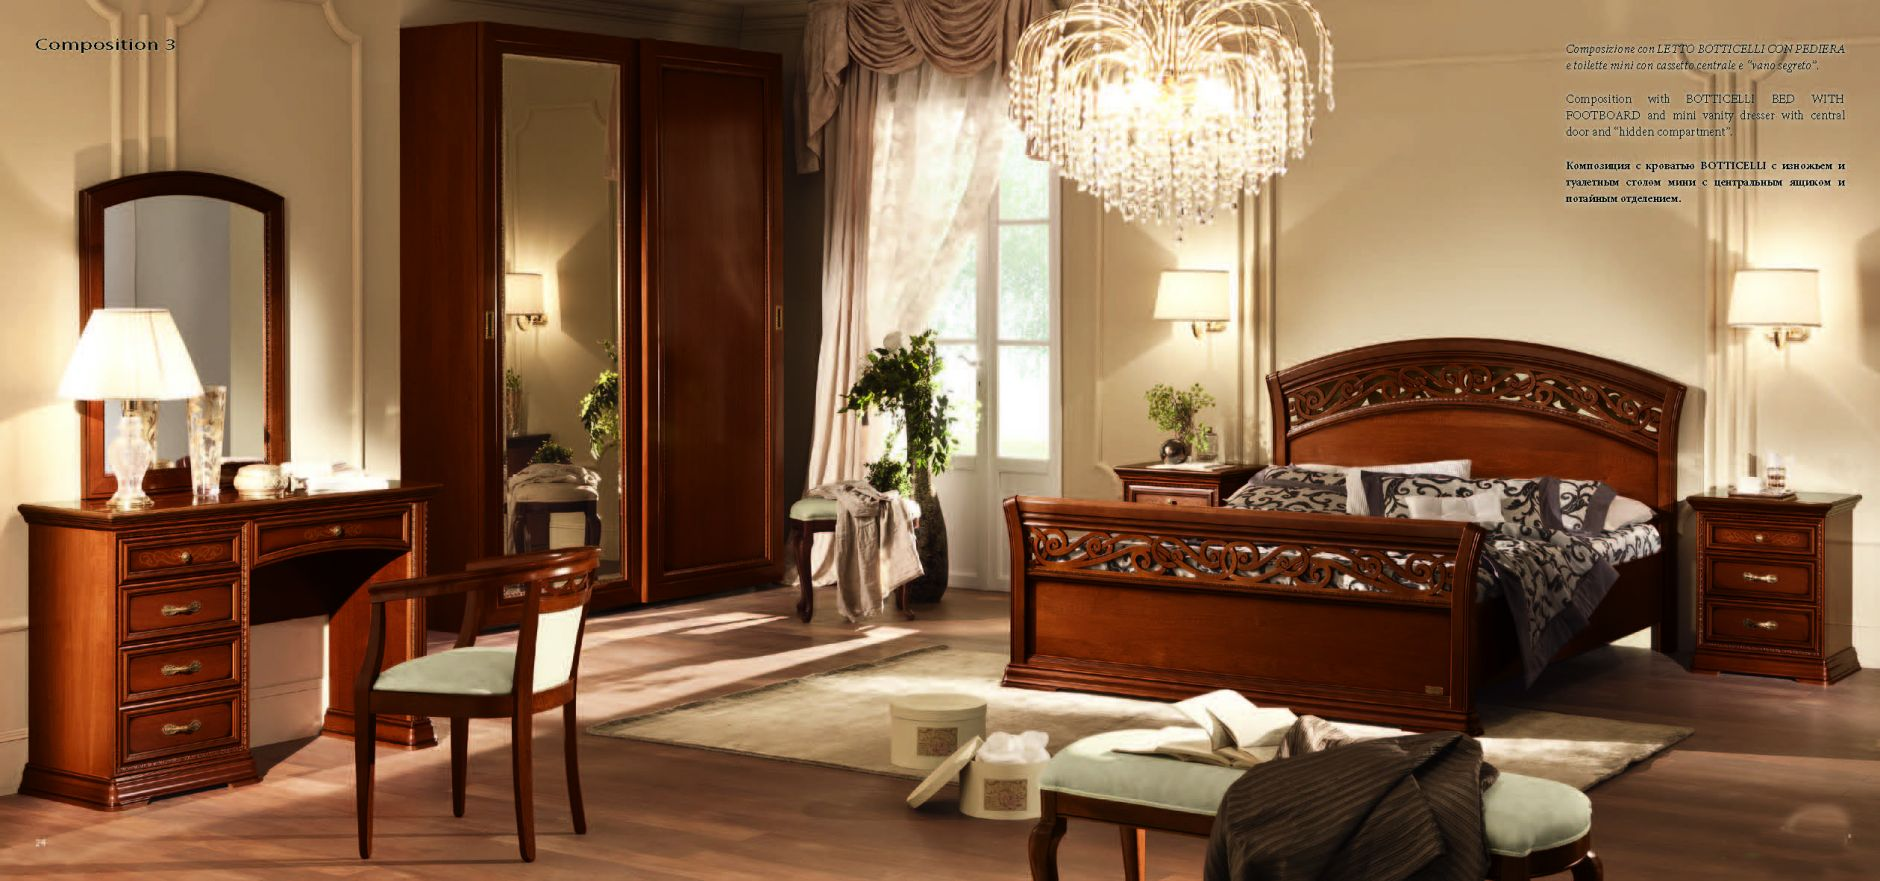 klassische m bel camelgroup schlafzimmer torriani zusammensetzung 3erdie m bel aus italien. Black Bedroom Furniture Sets. Home Design Ideas